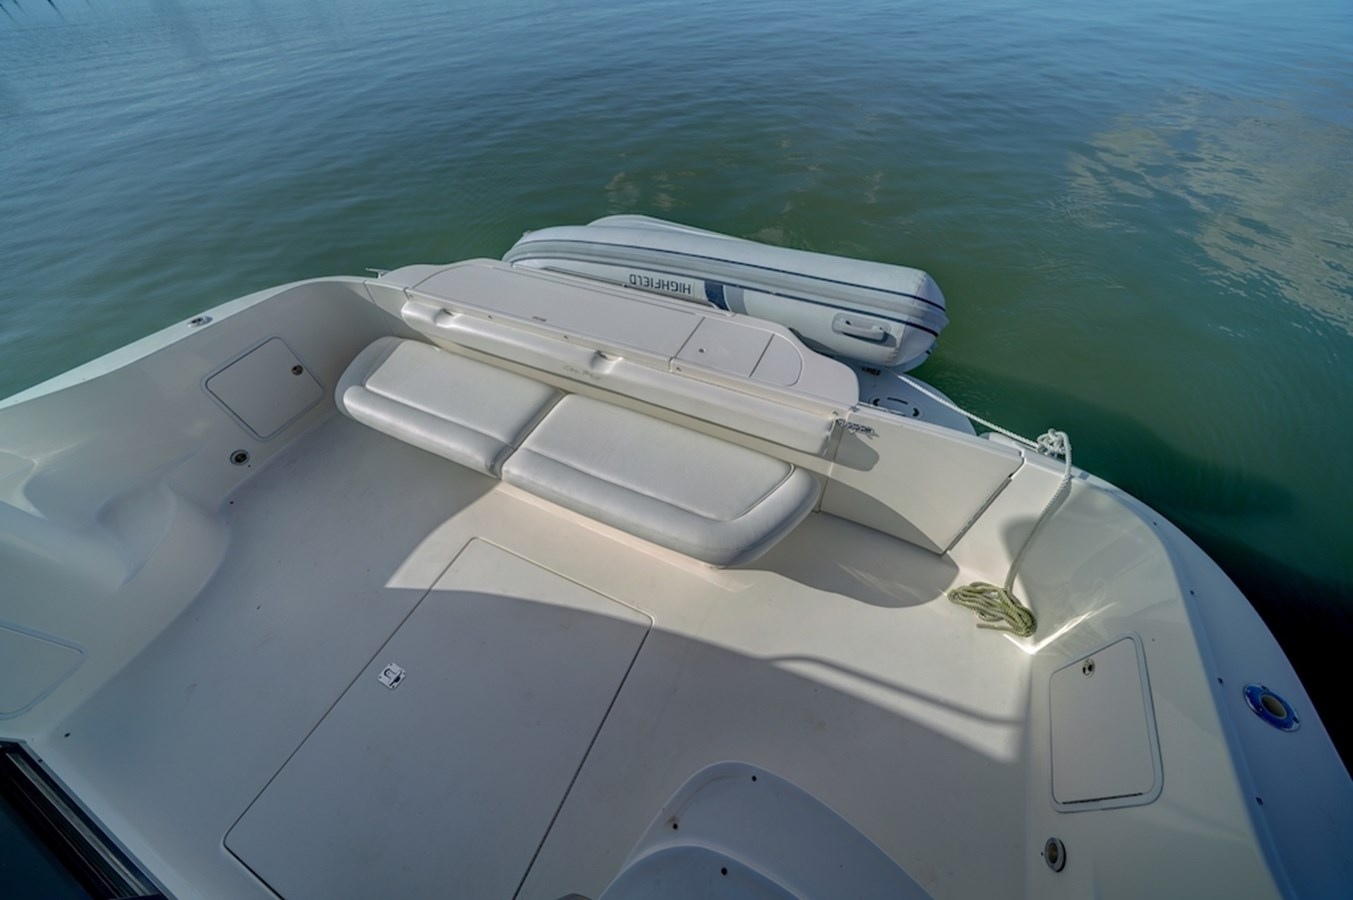 50 ft. Sea Ray – Luxury Power Yacht - Aft -Cockpit